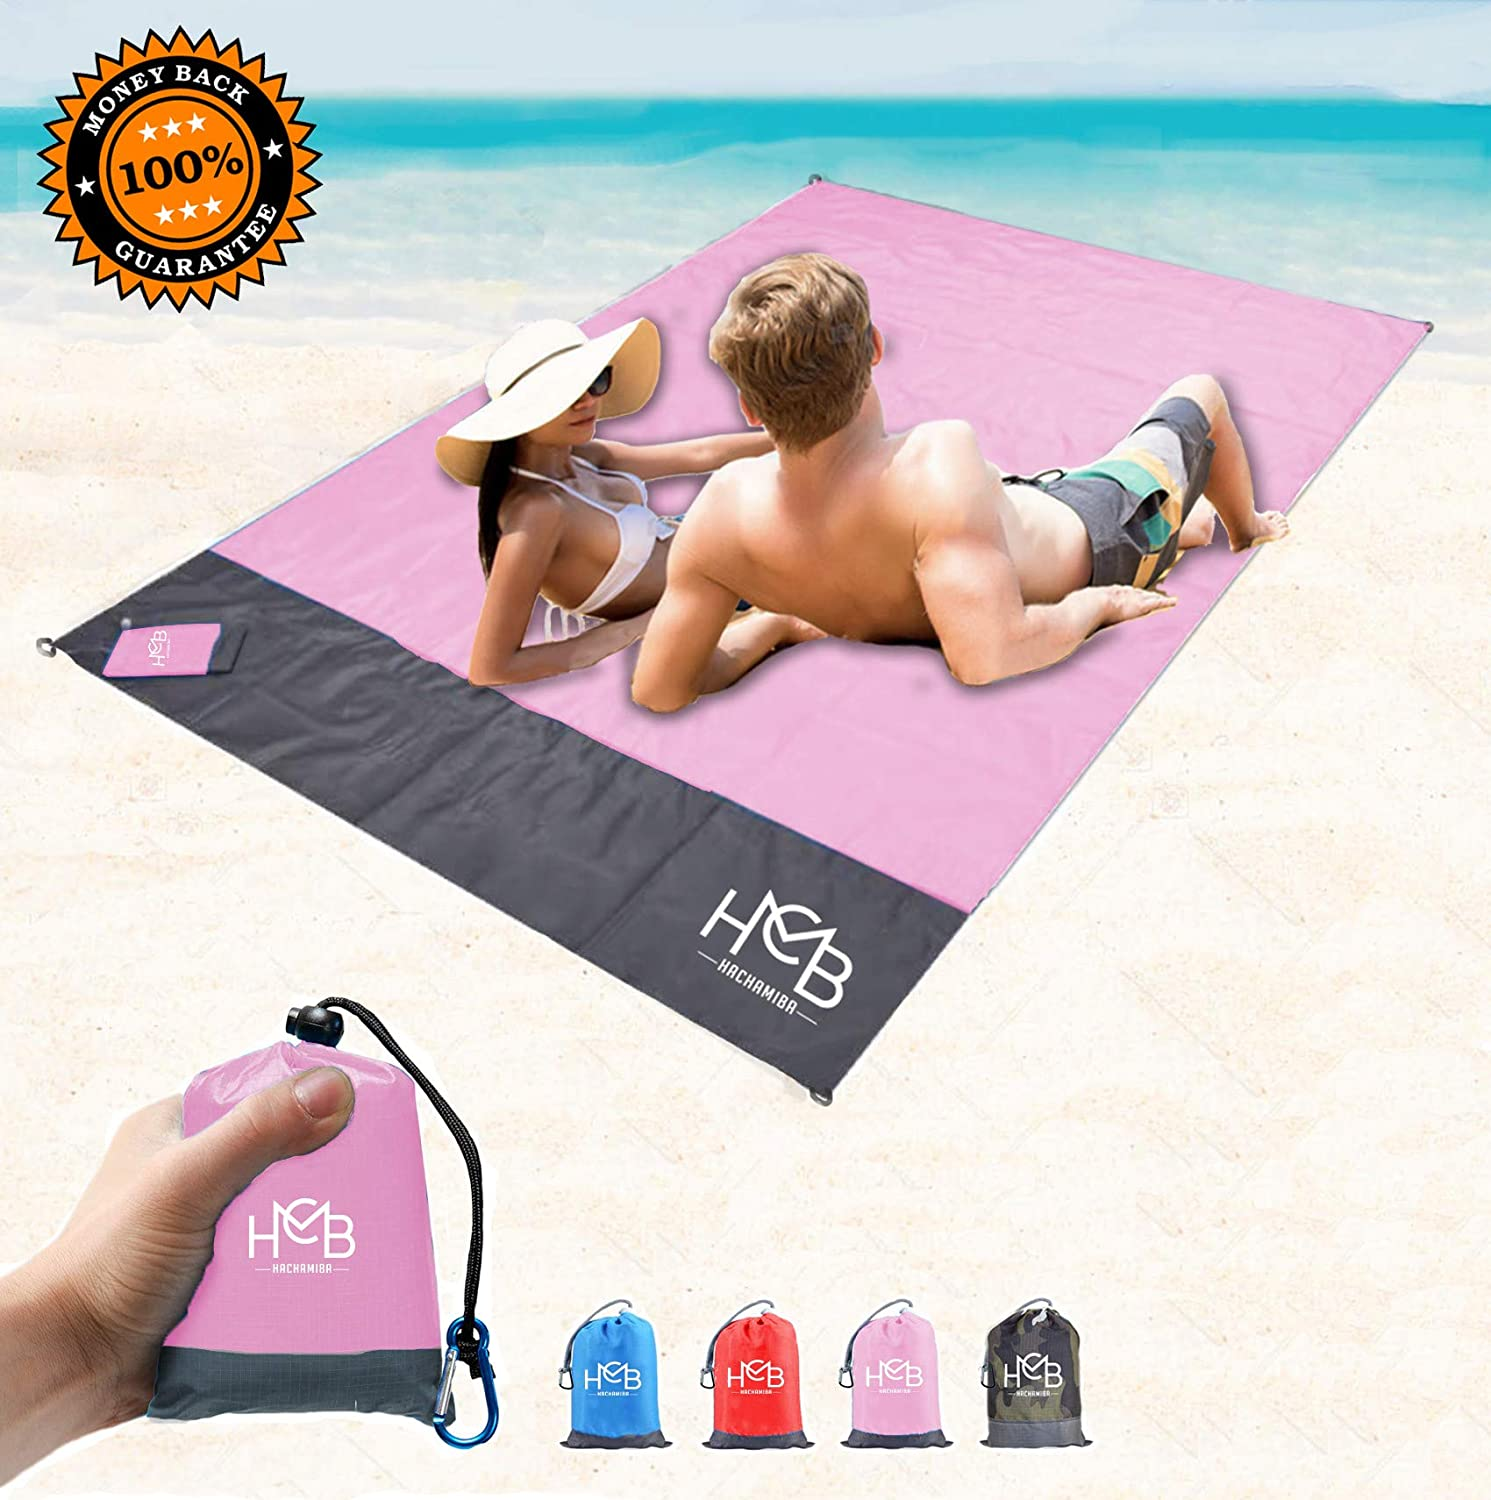 Fit 2 to 4 Persons Hachamiba Compact Outdoor Beach Blanket Pocket Lightweight Picnic Tent Footprint Mat Include 4 Stakes /& Carabiner 100/% Sand Free Waterproof Ground Cover 79/″x55/″